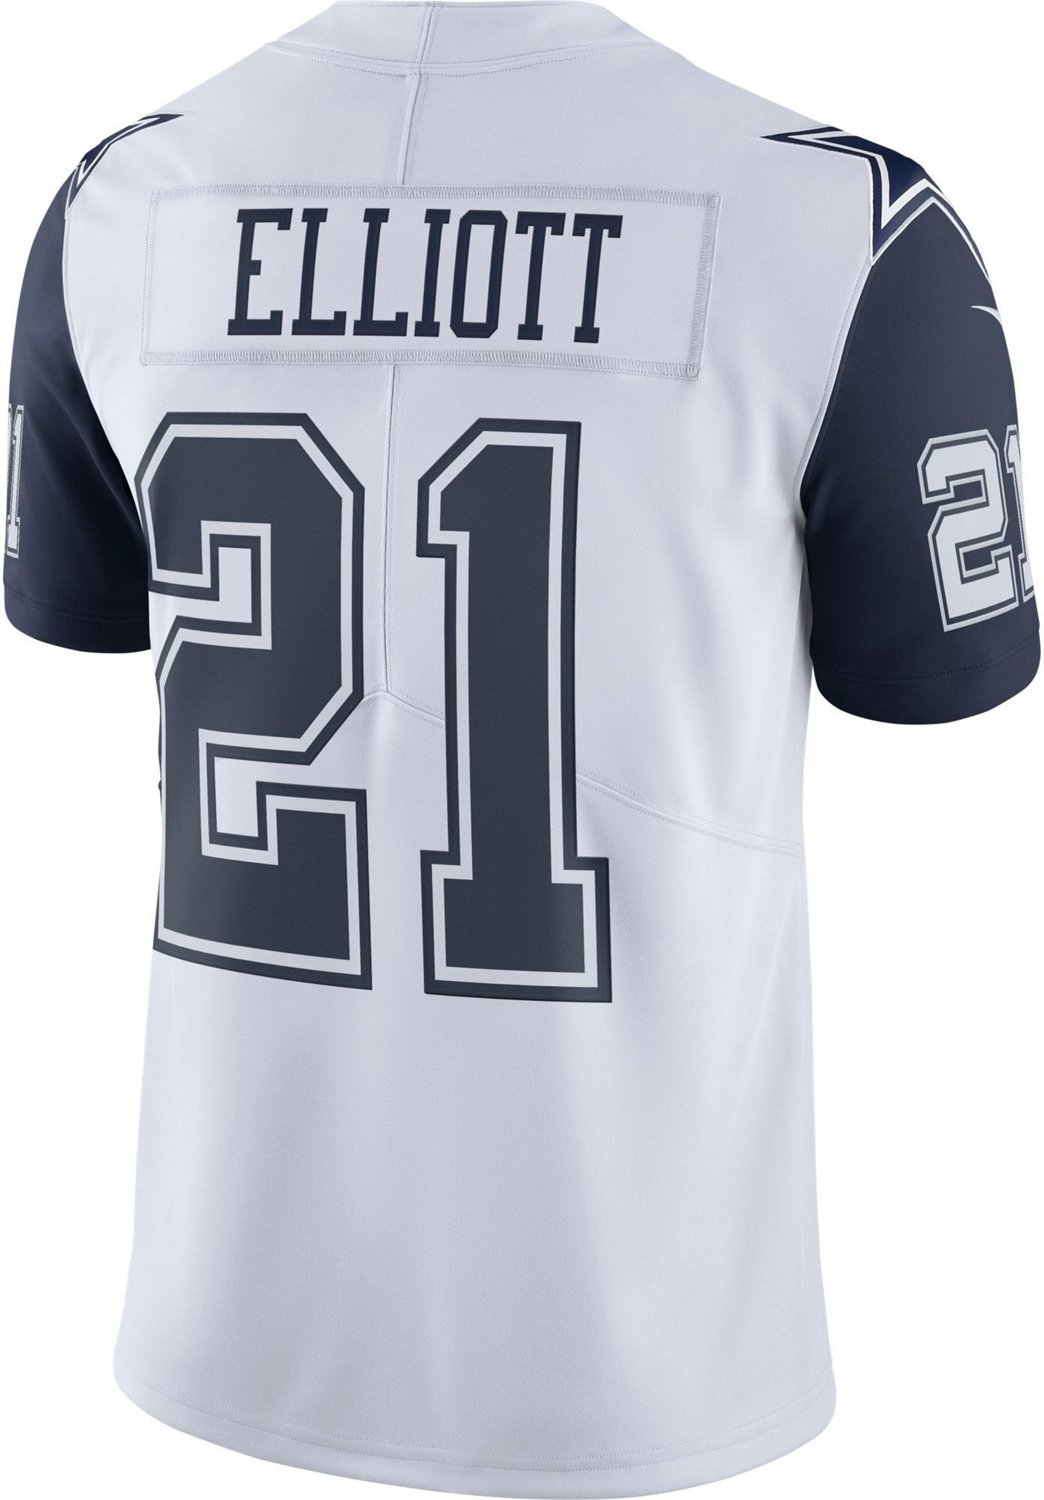 wholesale dealer 635f0 2ca5b Nike Men's Dallas Cowboys Ezekiel Elliott XC1 Color Rush Jersey